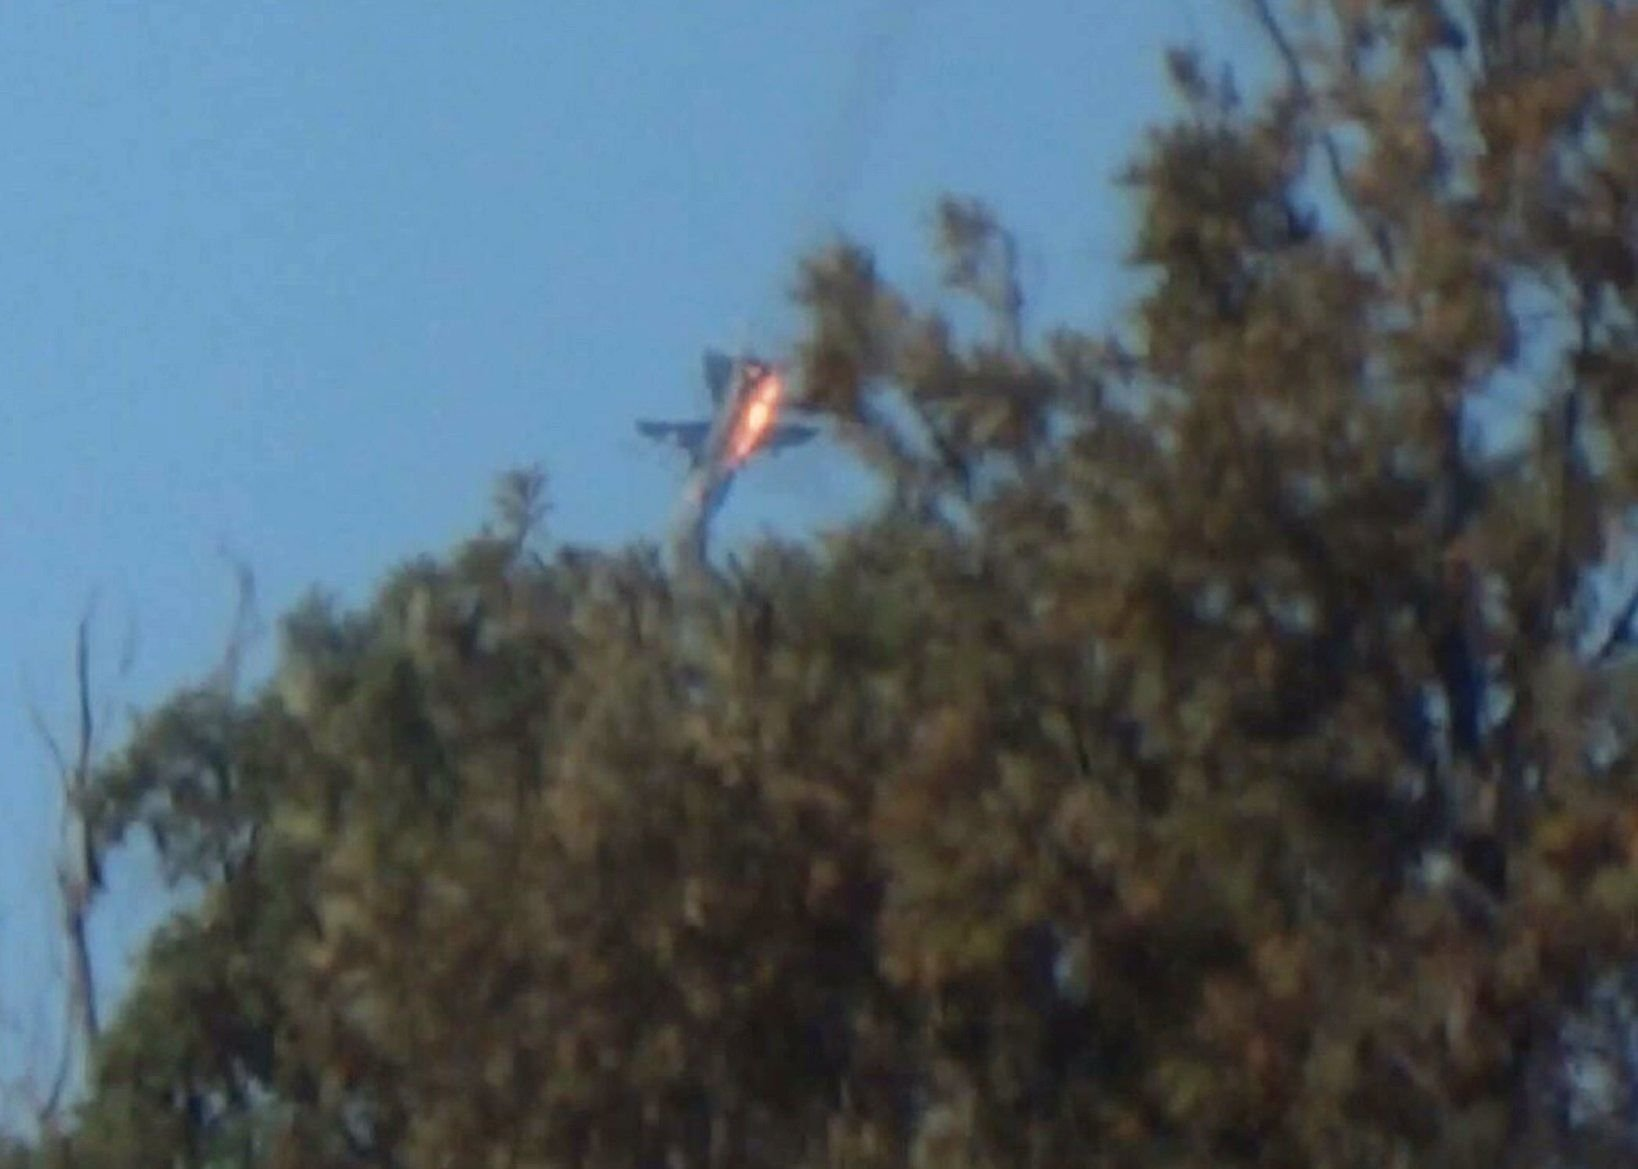 The Russian Su-24 bomber crashes in flames in a mountainous area in northern Syria after it was shot down by Turkish fighter jets near the Turkish-Syrian border November 24, 2015.